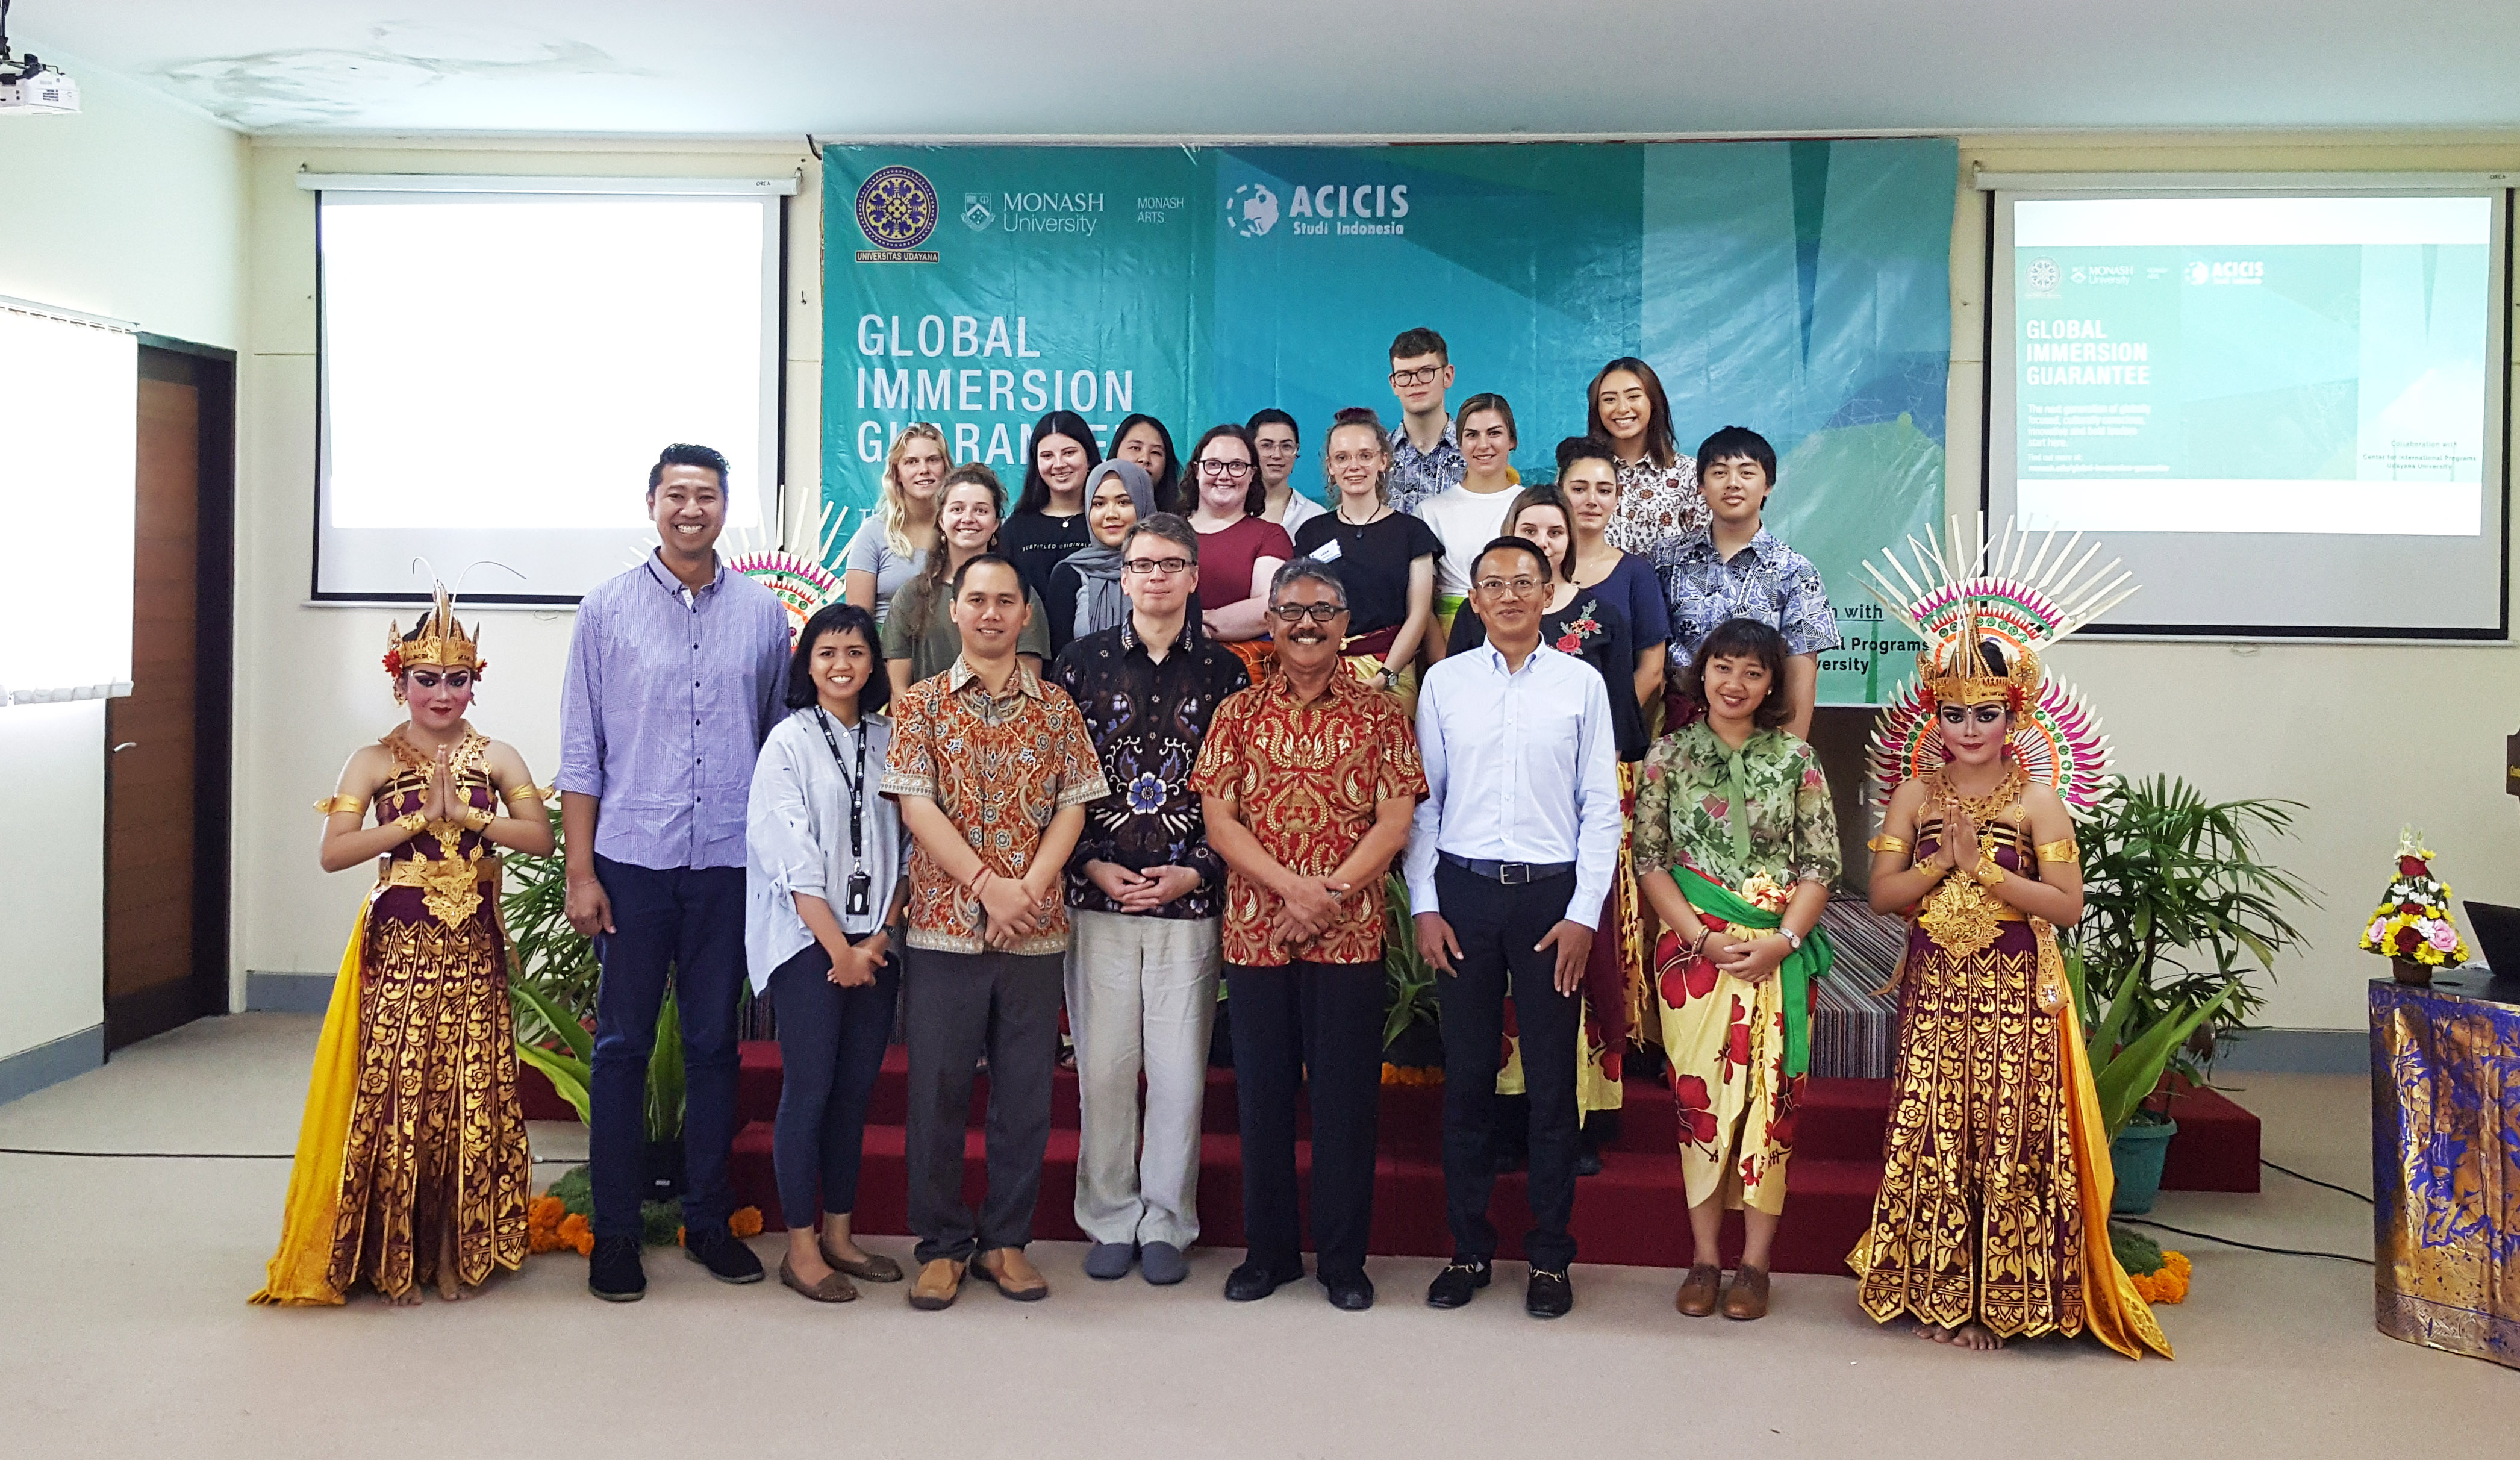 Monash Arts Global Immersion Guarantee 2019